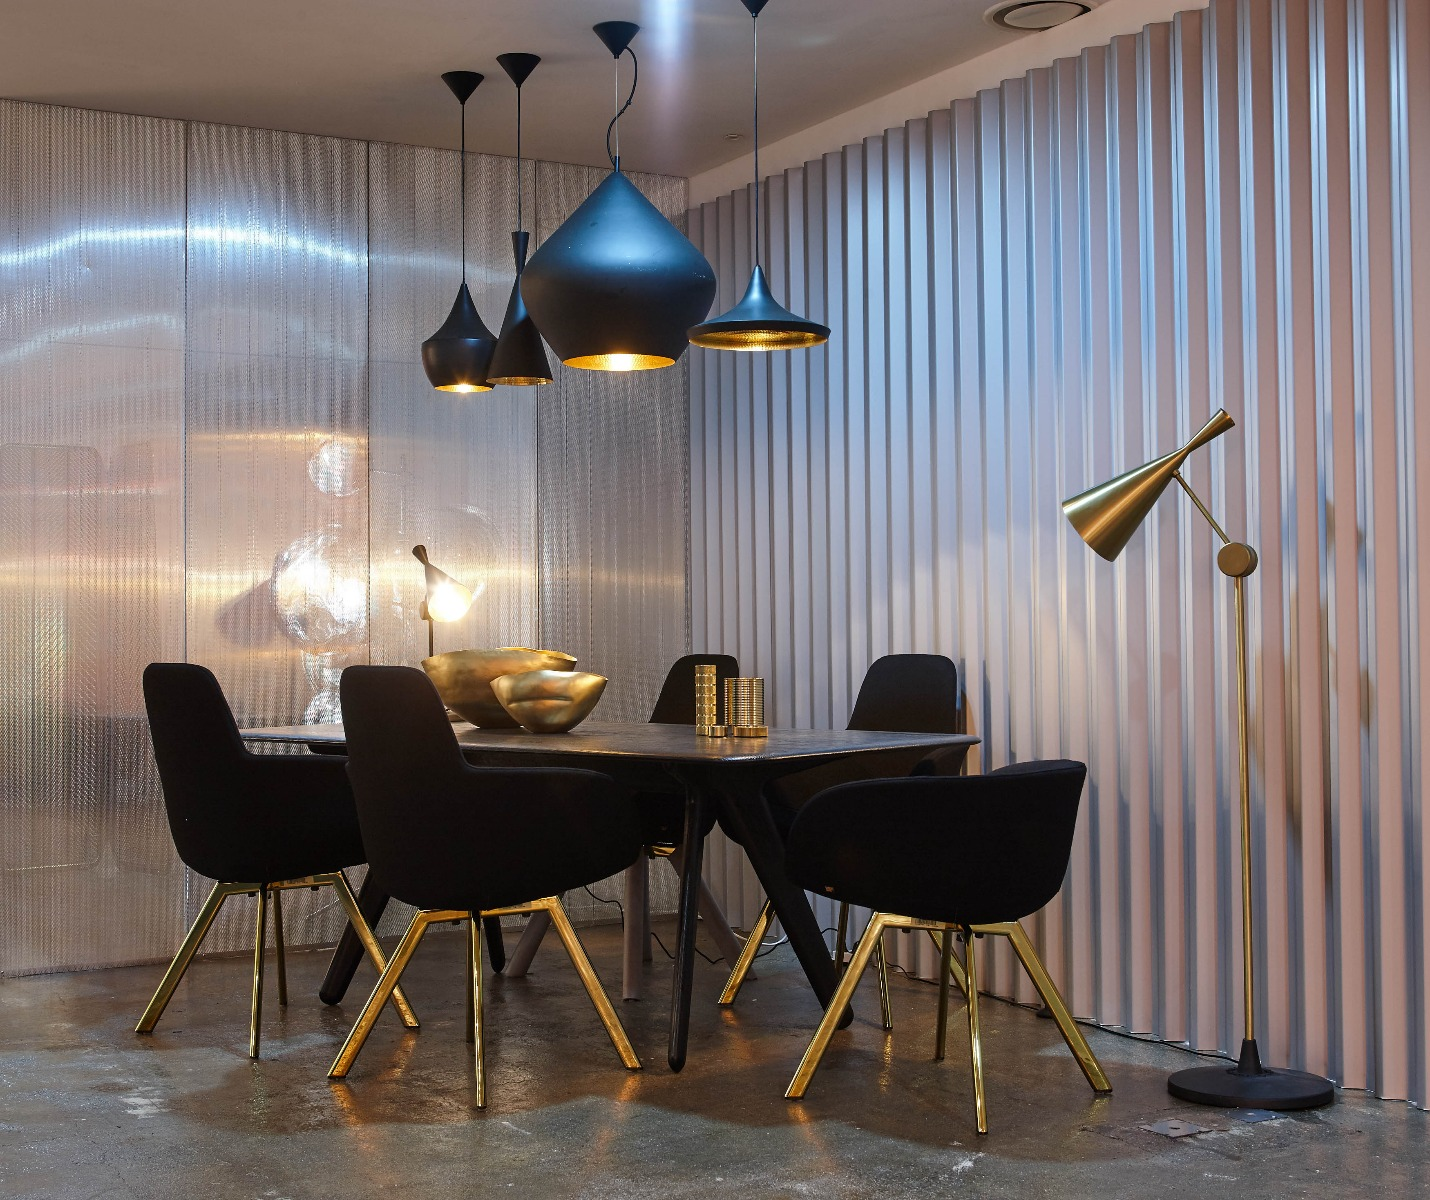 Tom Dixon Yesterday, Today, Tomorrow exhibition at 10 Corso Como Seoul featuring Slab dining table, Scoop High Back dining chairs, Beat pendants and floor light.